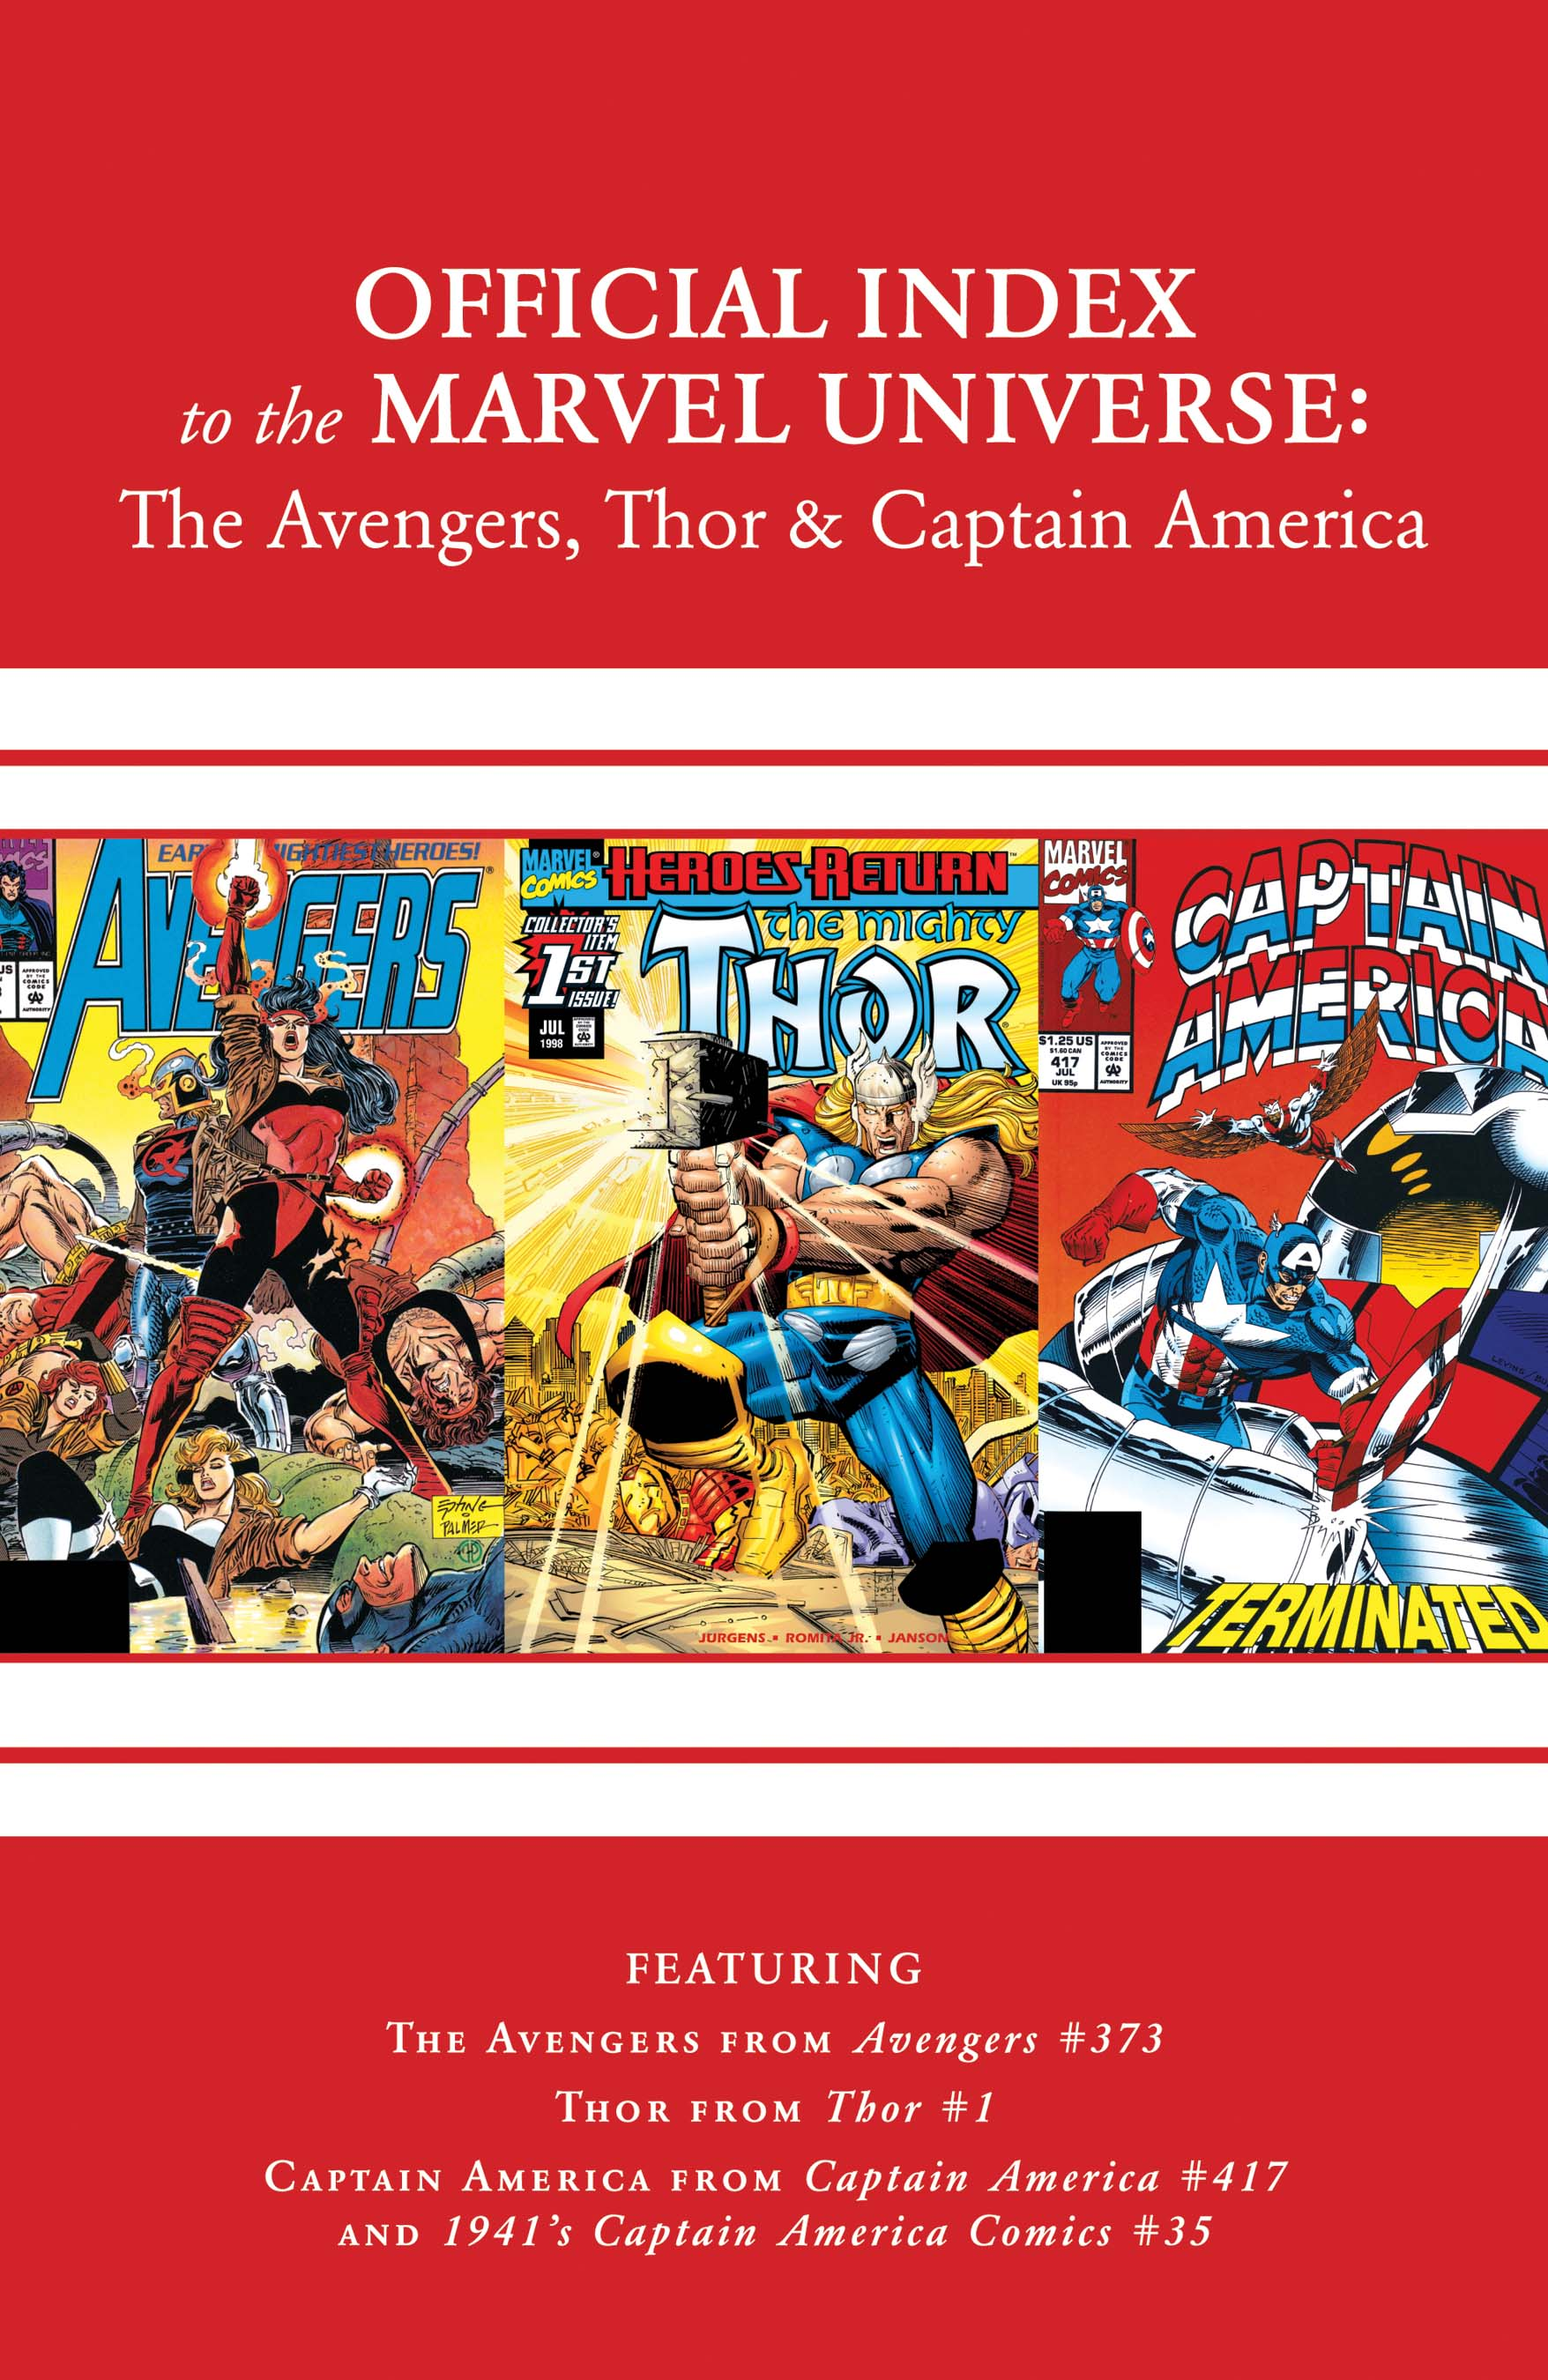 Avengers, Thor & Captain America: Official Index to the Marvel Universe (2010) #11